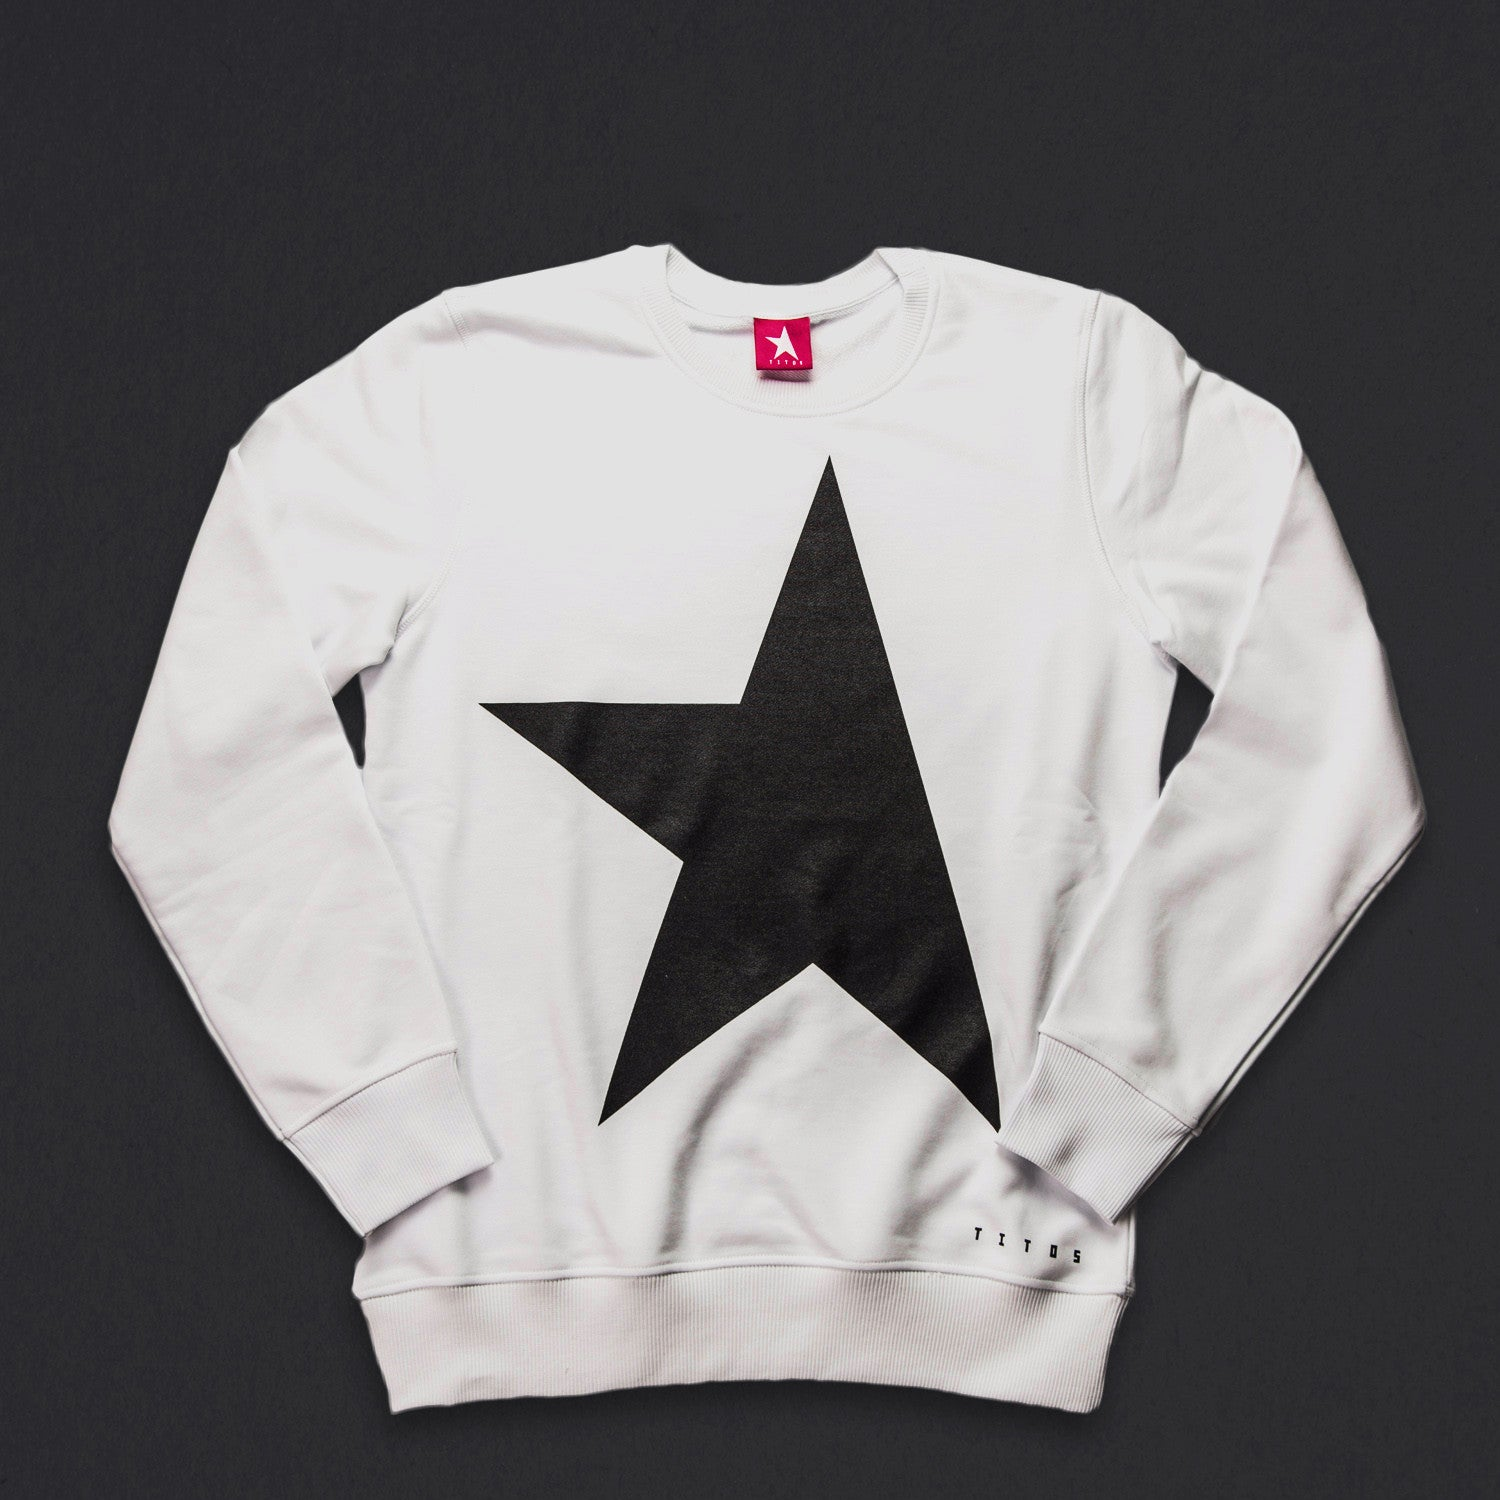 14th women's TITOS crewneck white/black large star logo